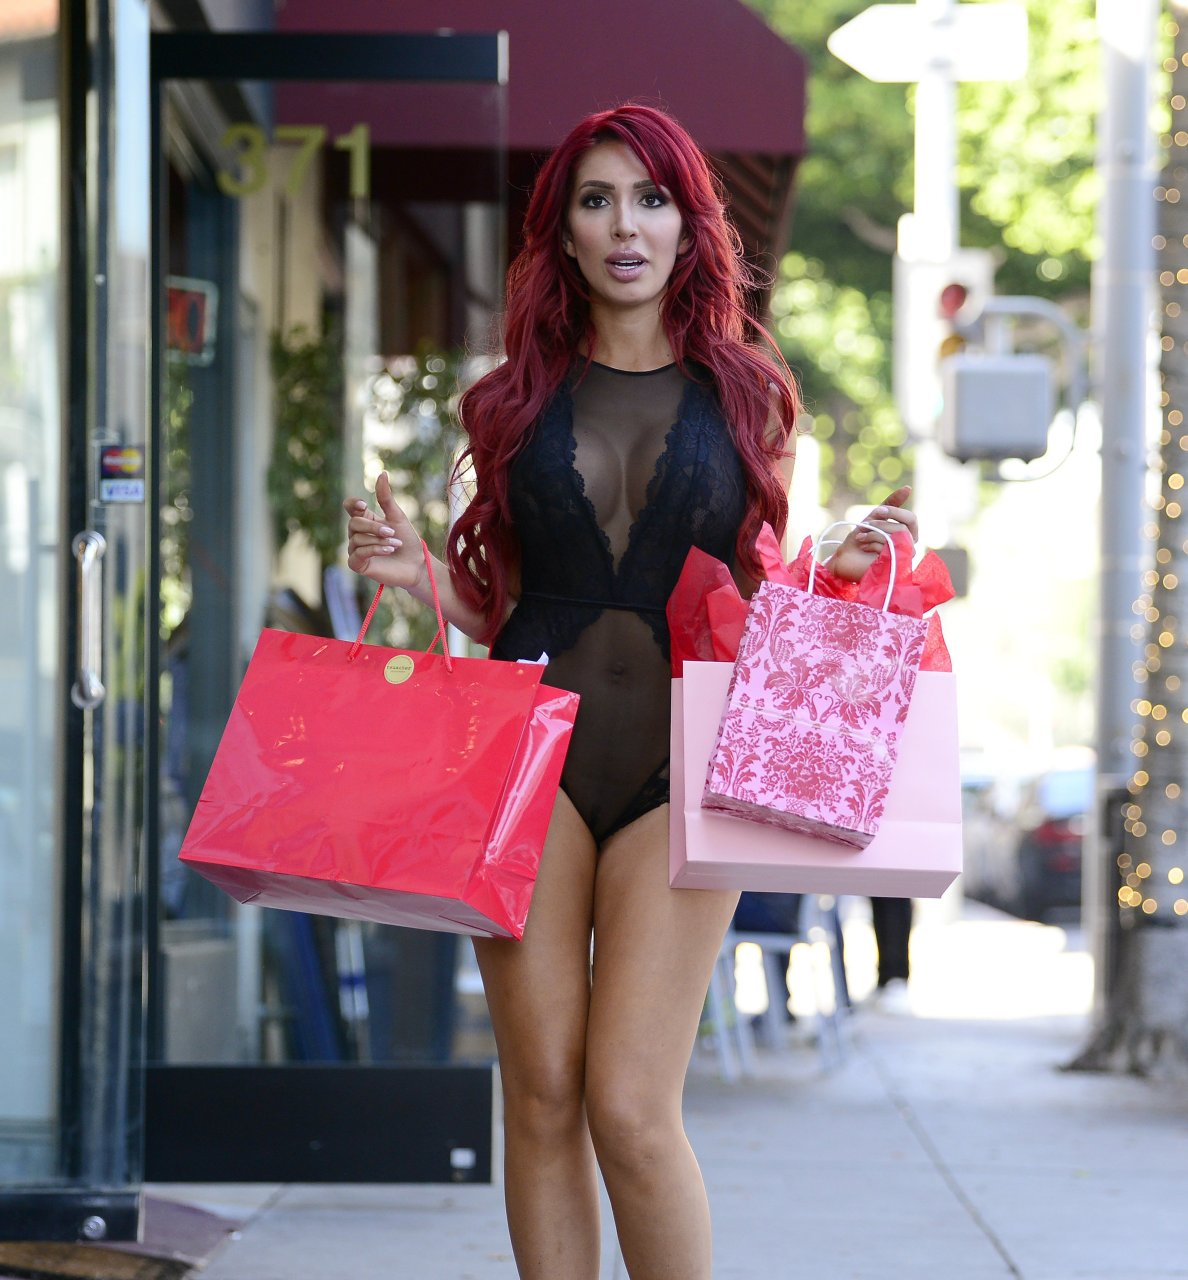 Farrah-Abraham-See-Through-30-The-Fappening-Blog.jpg